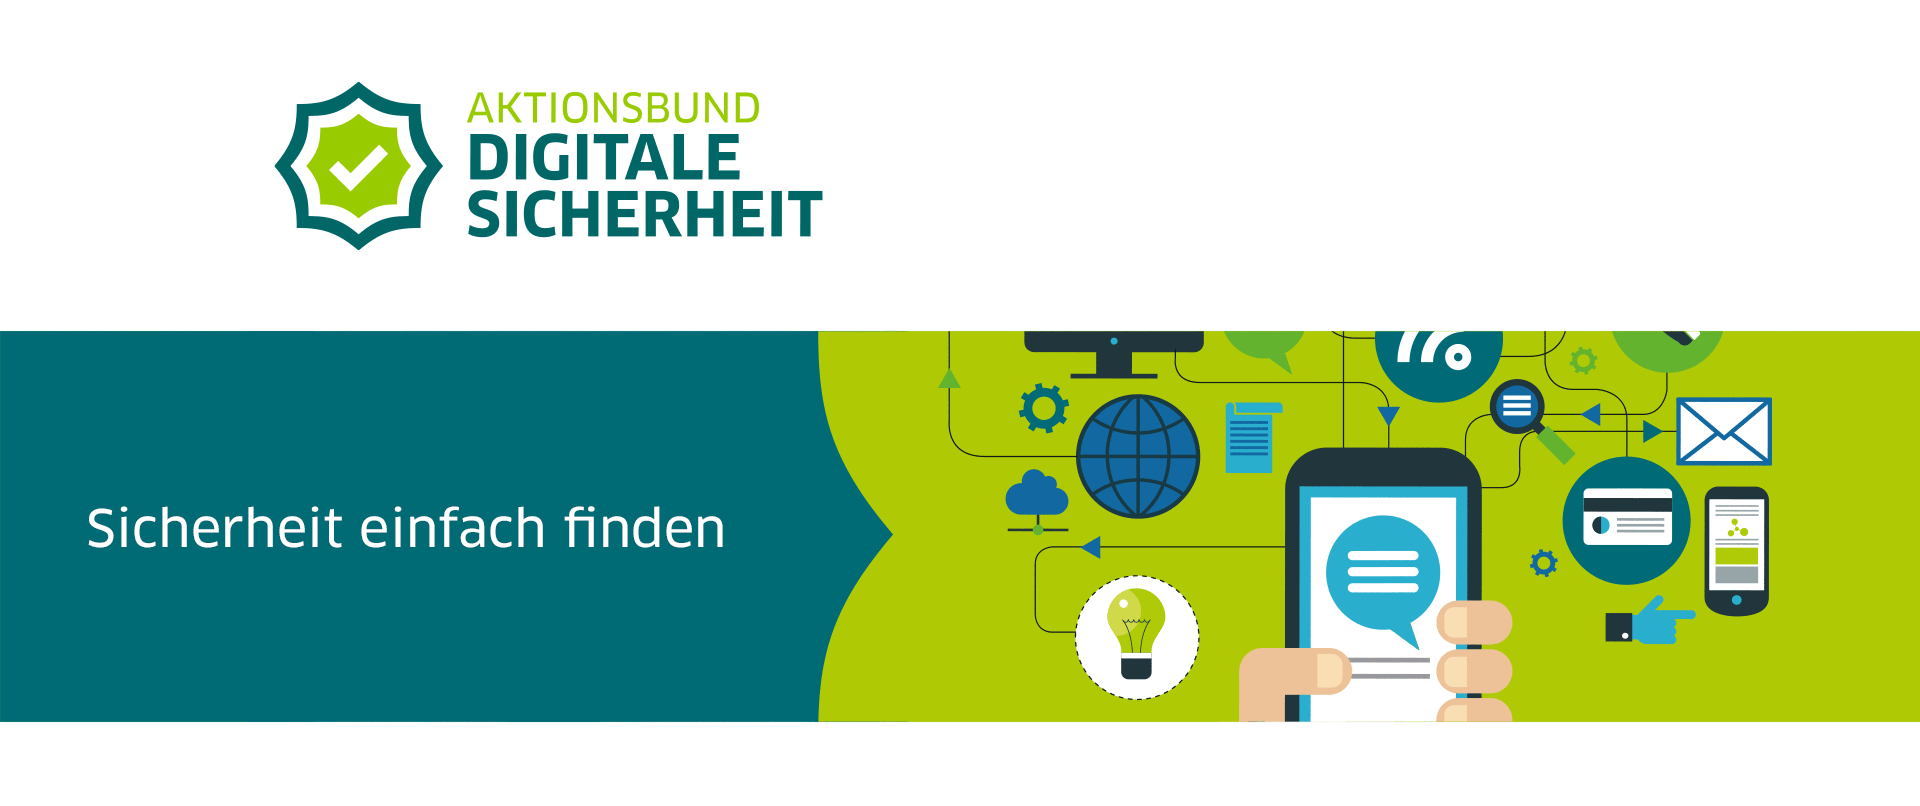 DsiN Aktionsbund Digitale Sicherheit Website